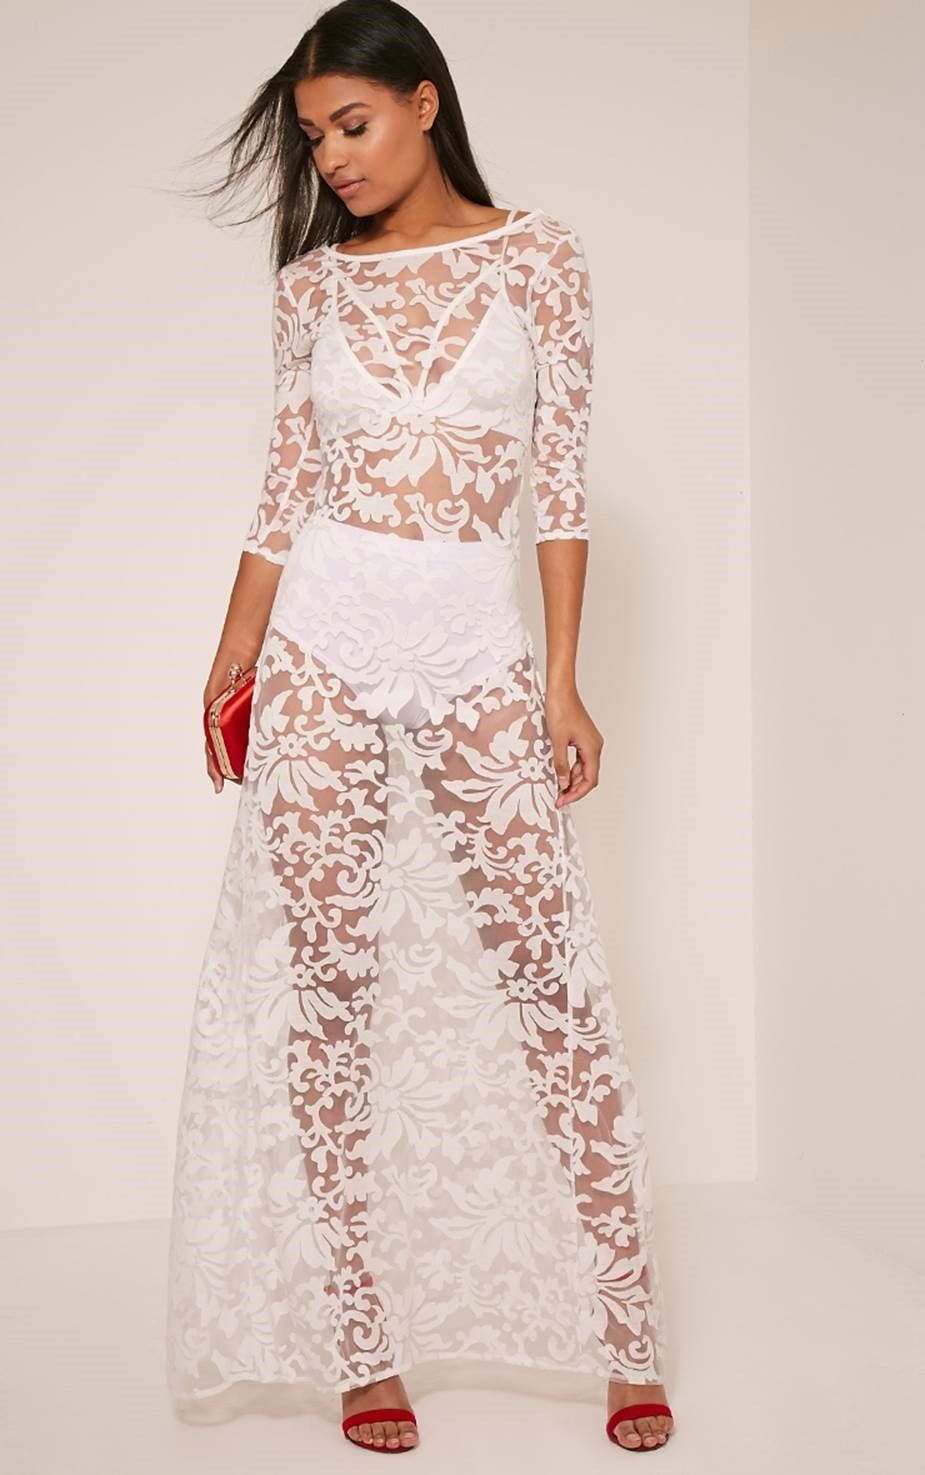 Suzzie White Scoop Back Sheer Floral Maxi Dress